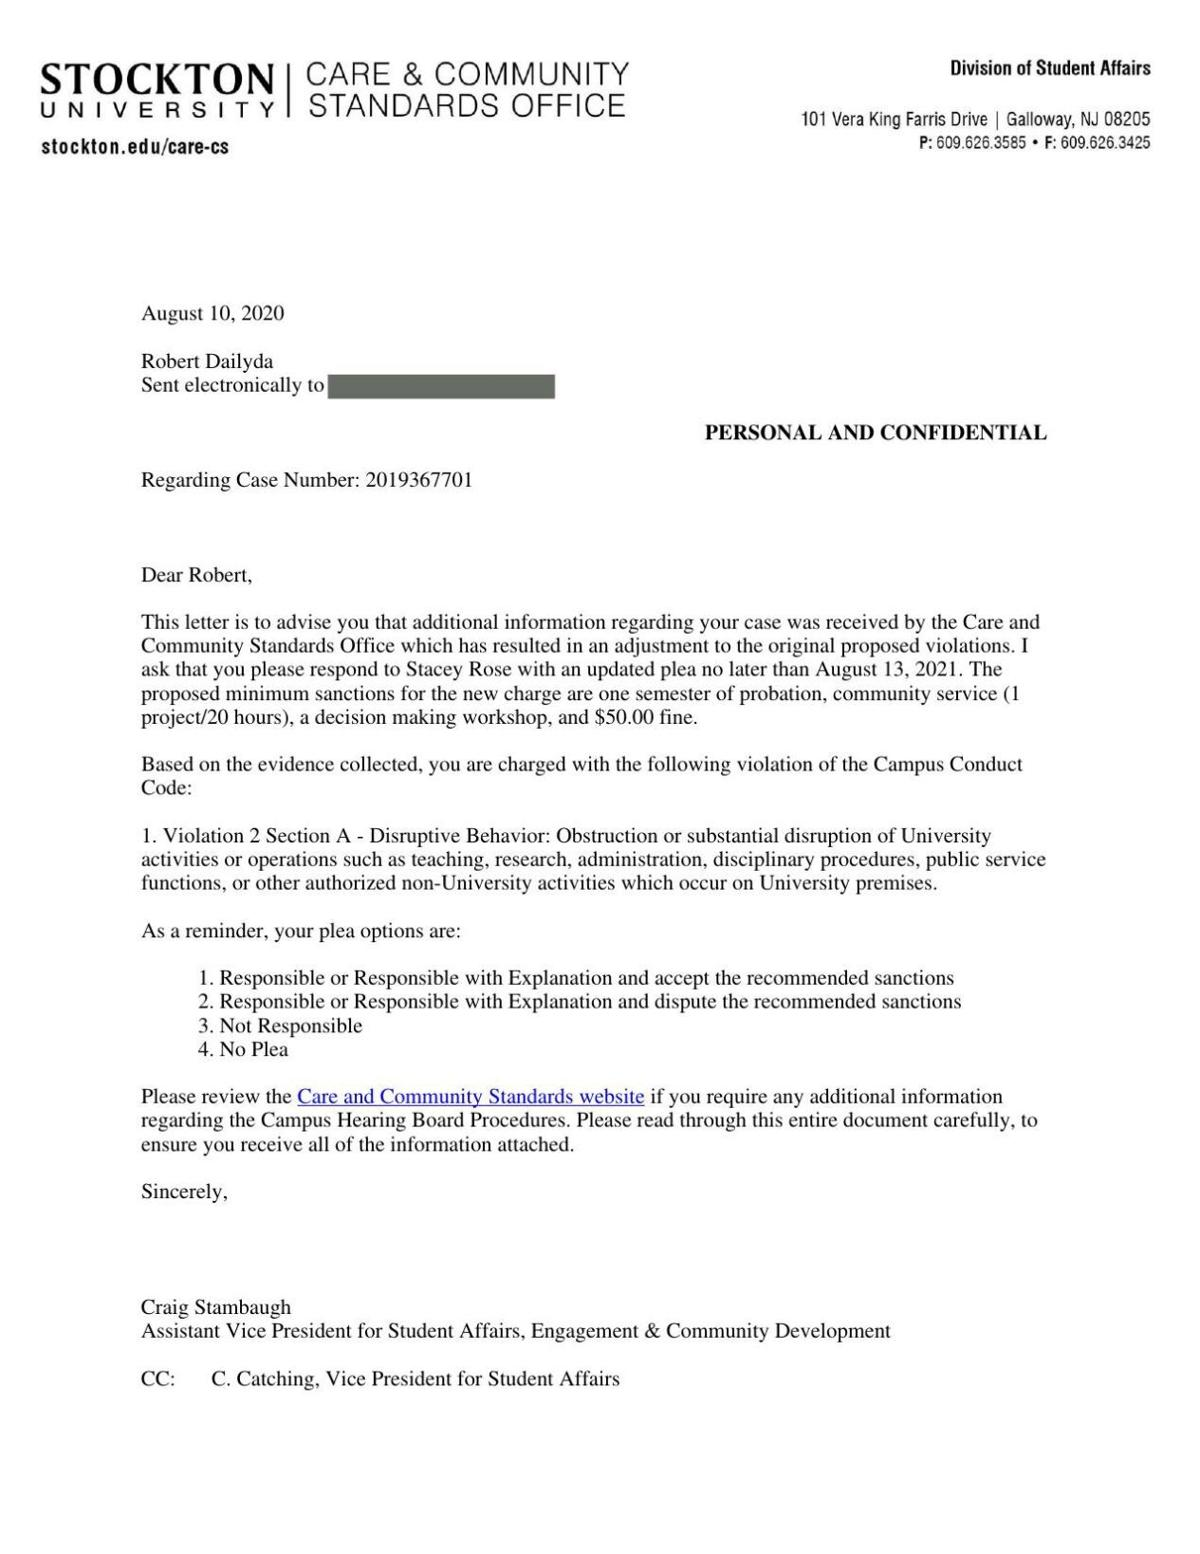 Updated charge letter against Dailyda Aug. 10, 2020